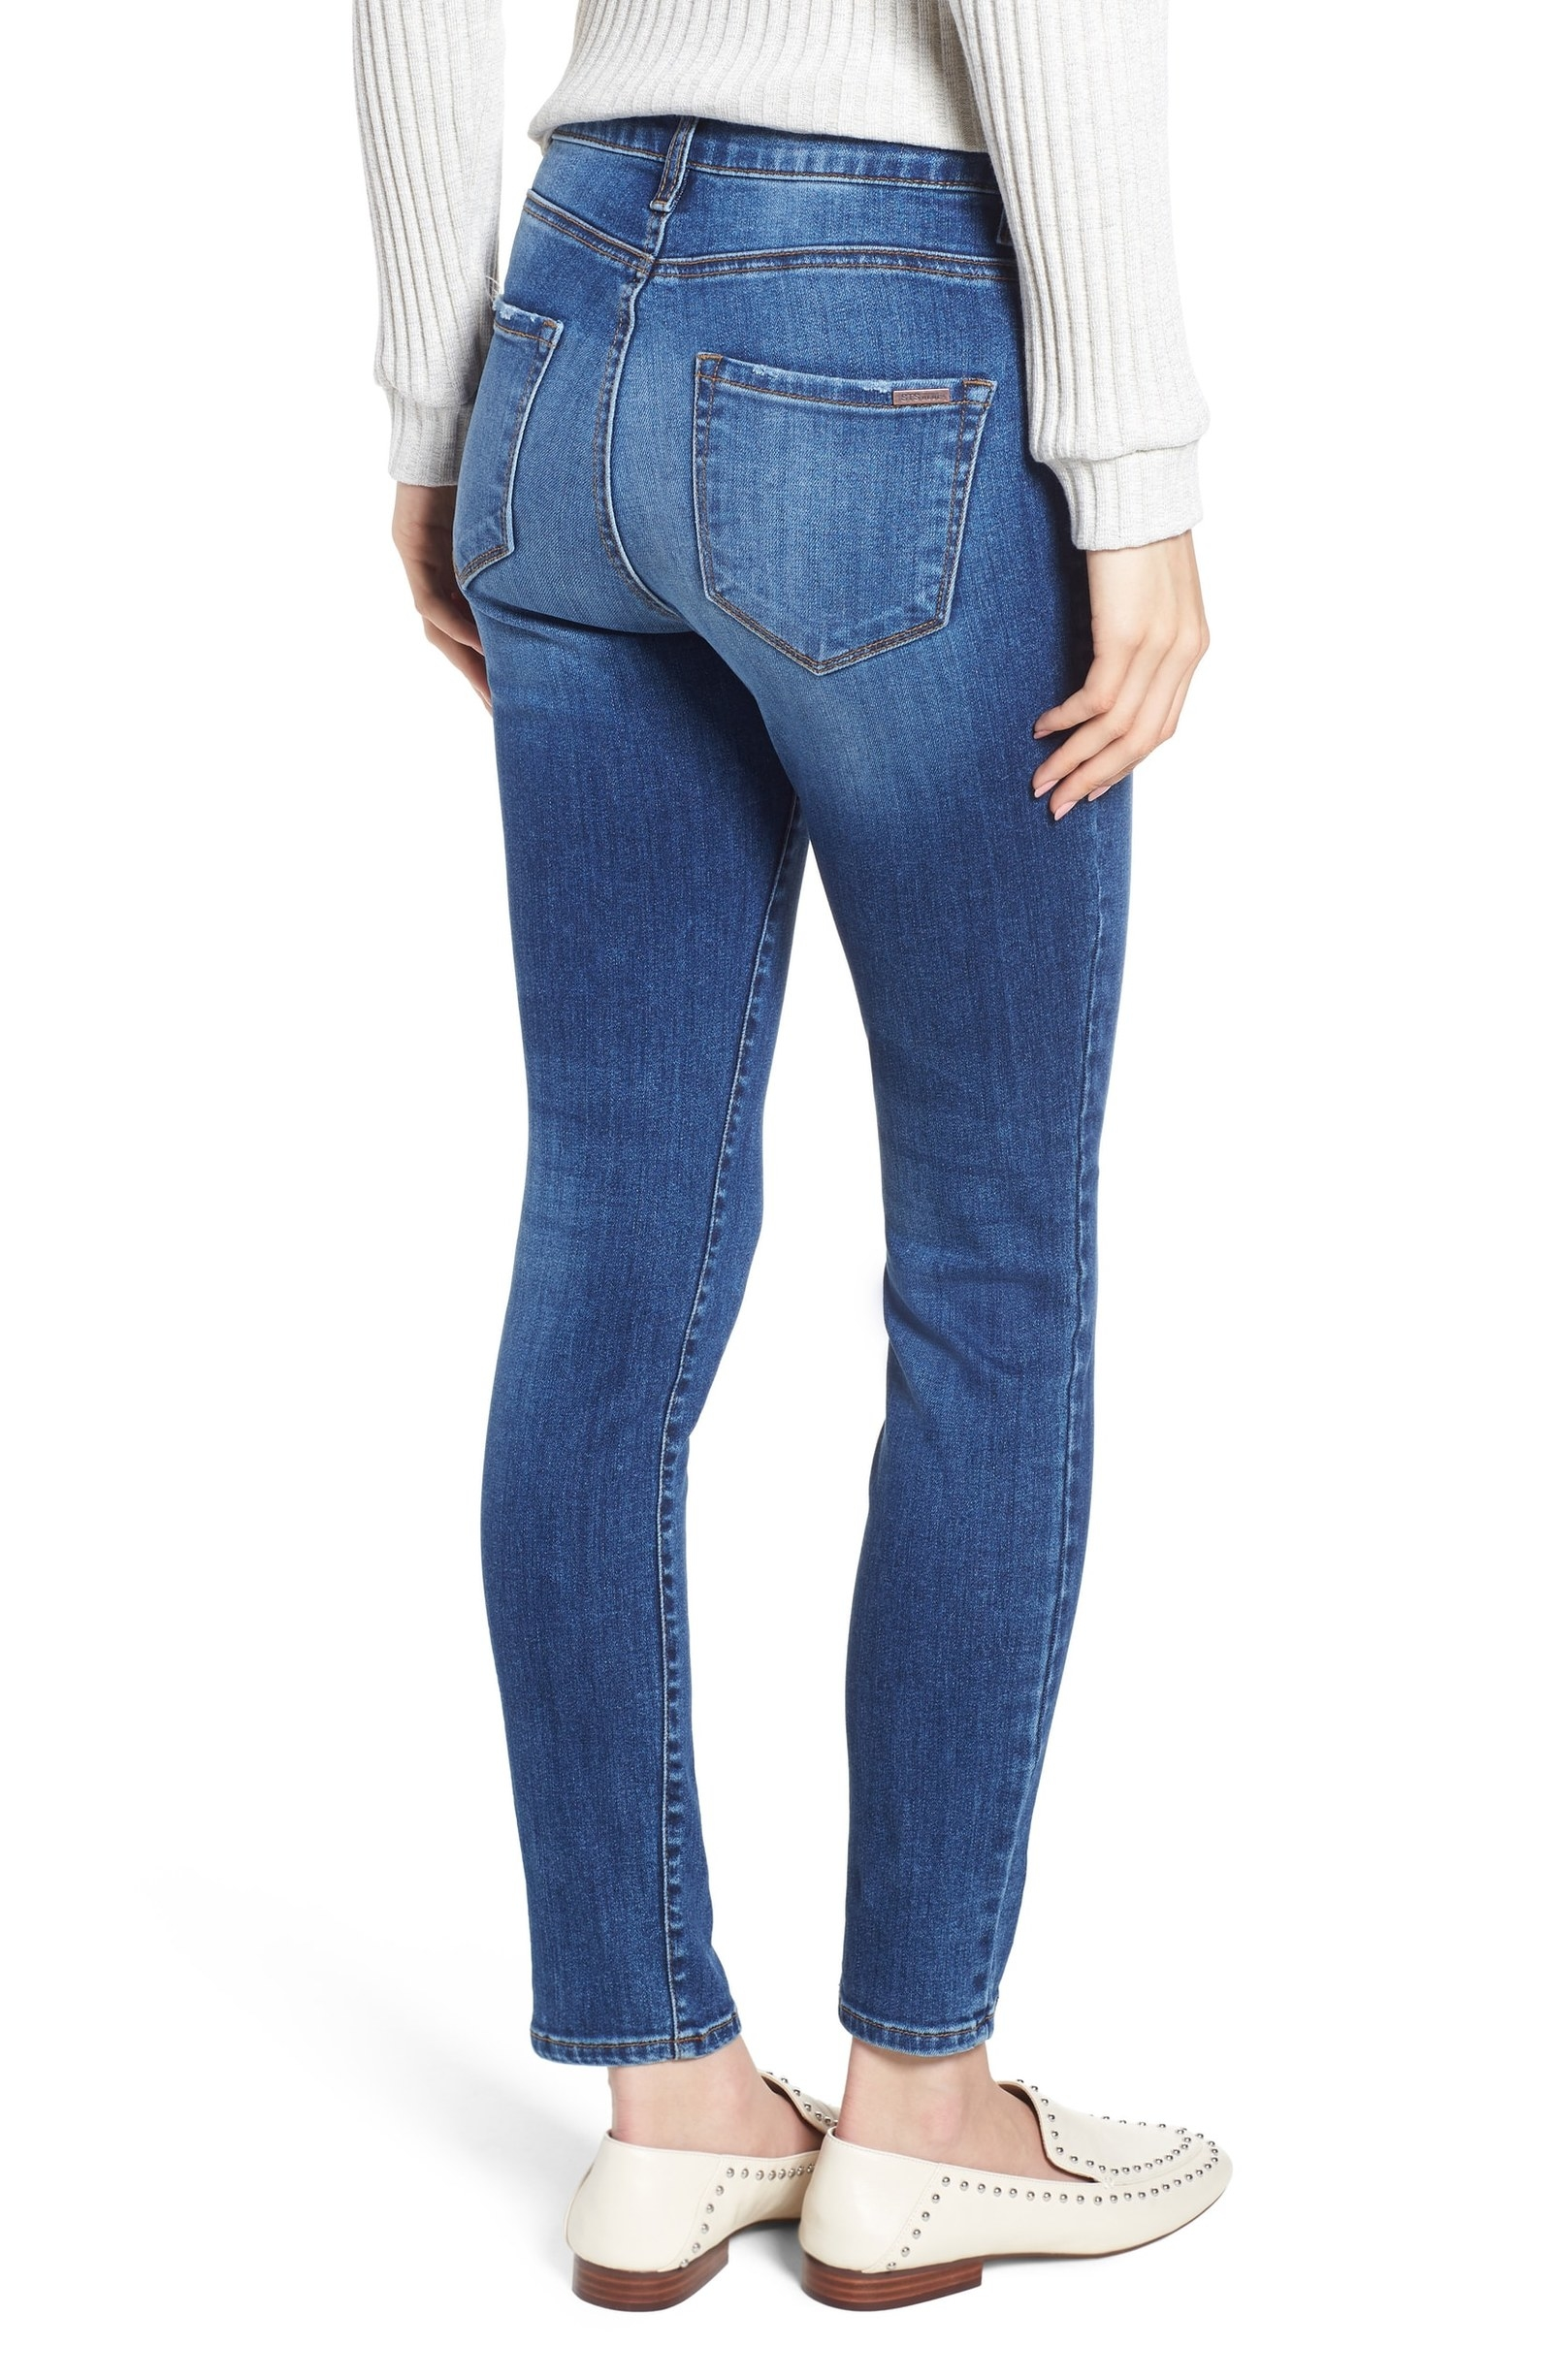 7e36c473b15 29 Of The Best Pairs Of Jeans Under $100